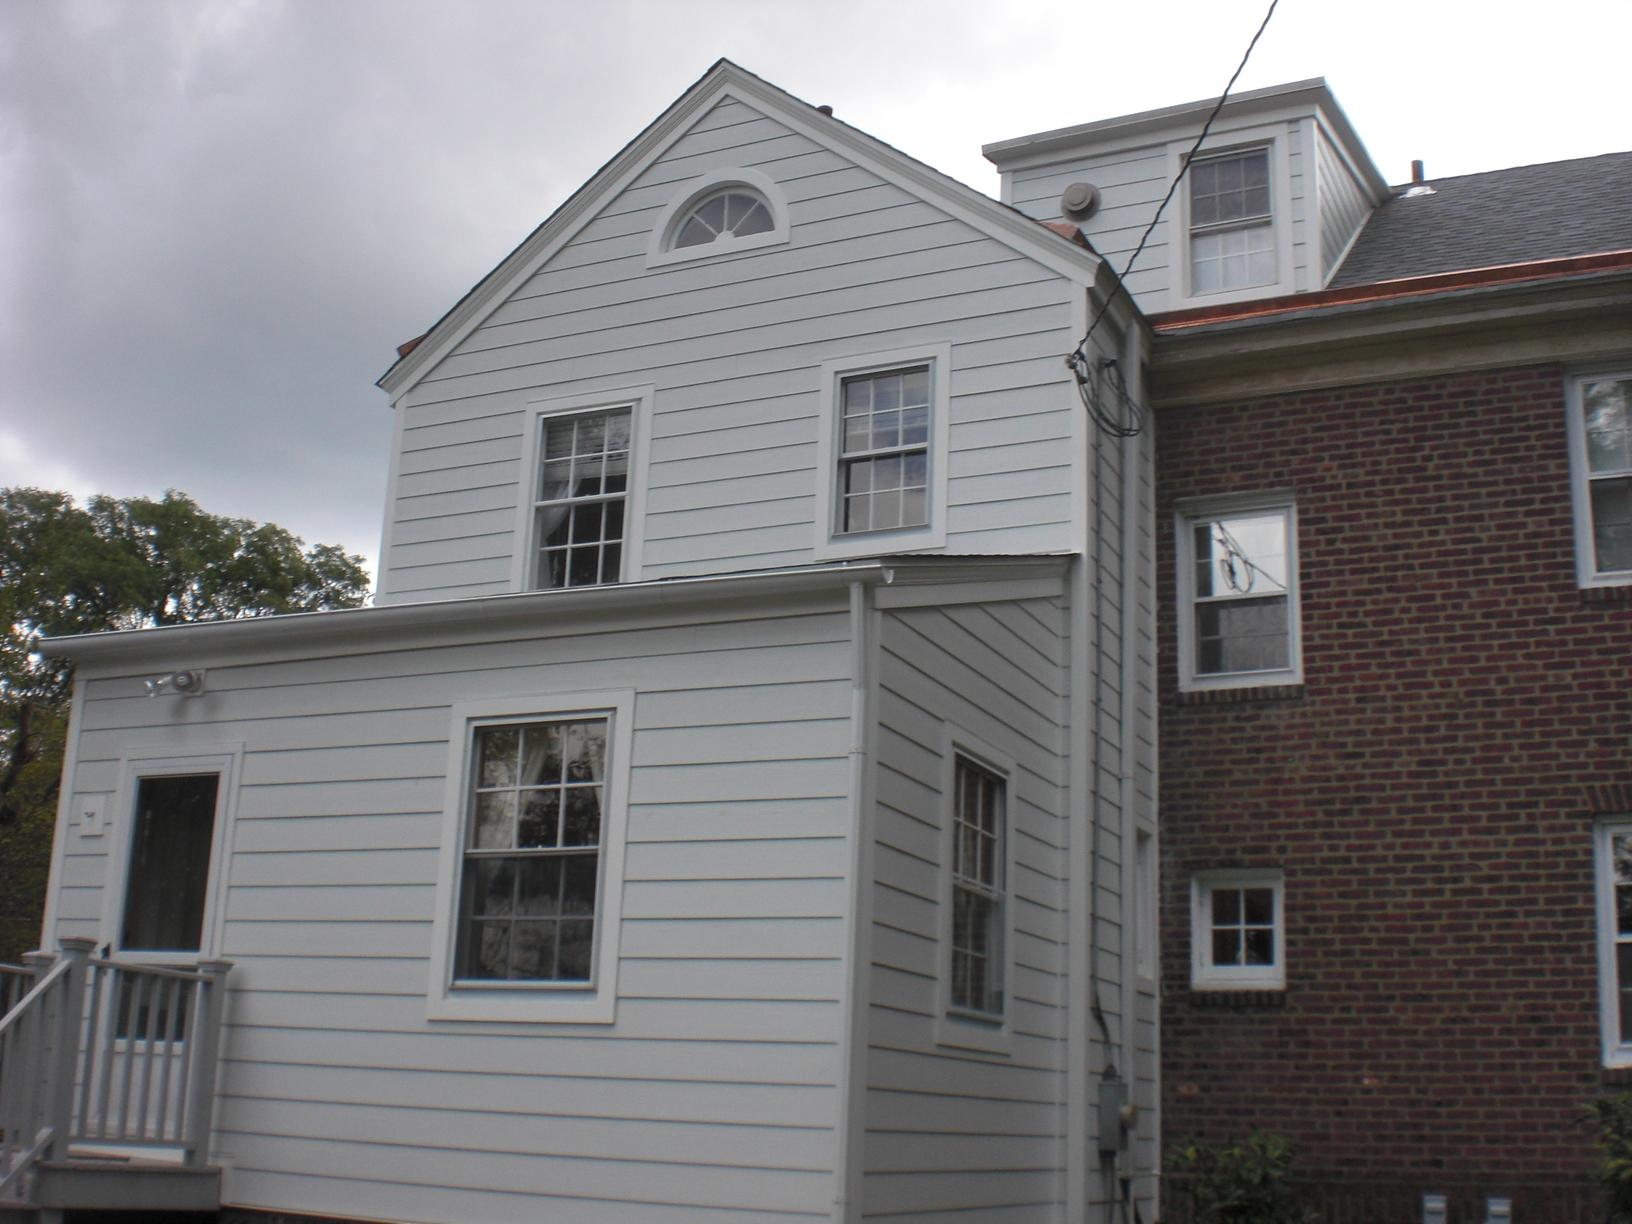 Quarry Grey Owens Corning Duration Shingles with Storm Guard and Copper Flashing and White Hardie Plank Fiber Cement Siding Installation in Broomall, PA